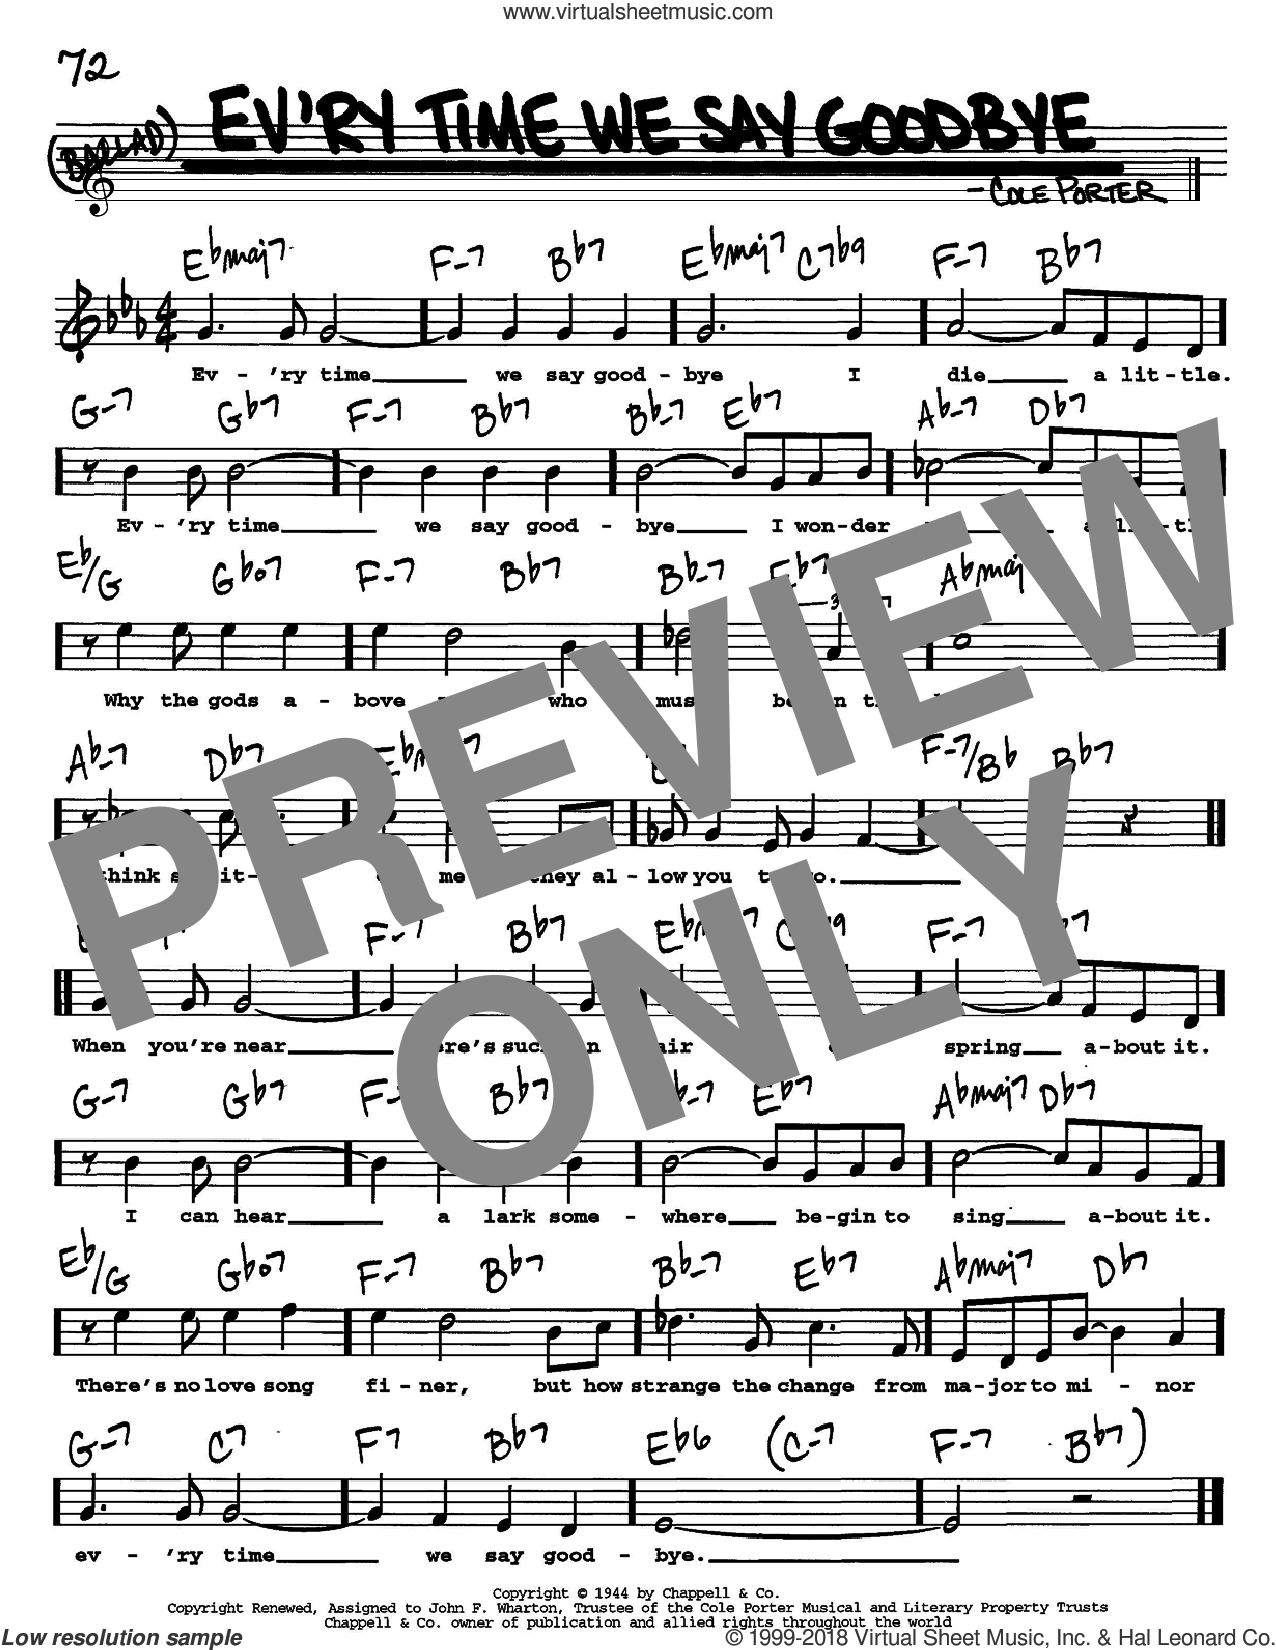 Ev'ry Time We Say Goodbye sheet music for voice and other instruments (Vocal Volume 2) by Cole Porter. Score Image Preview.